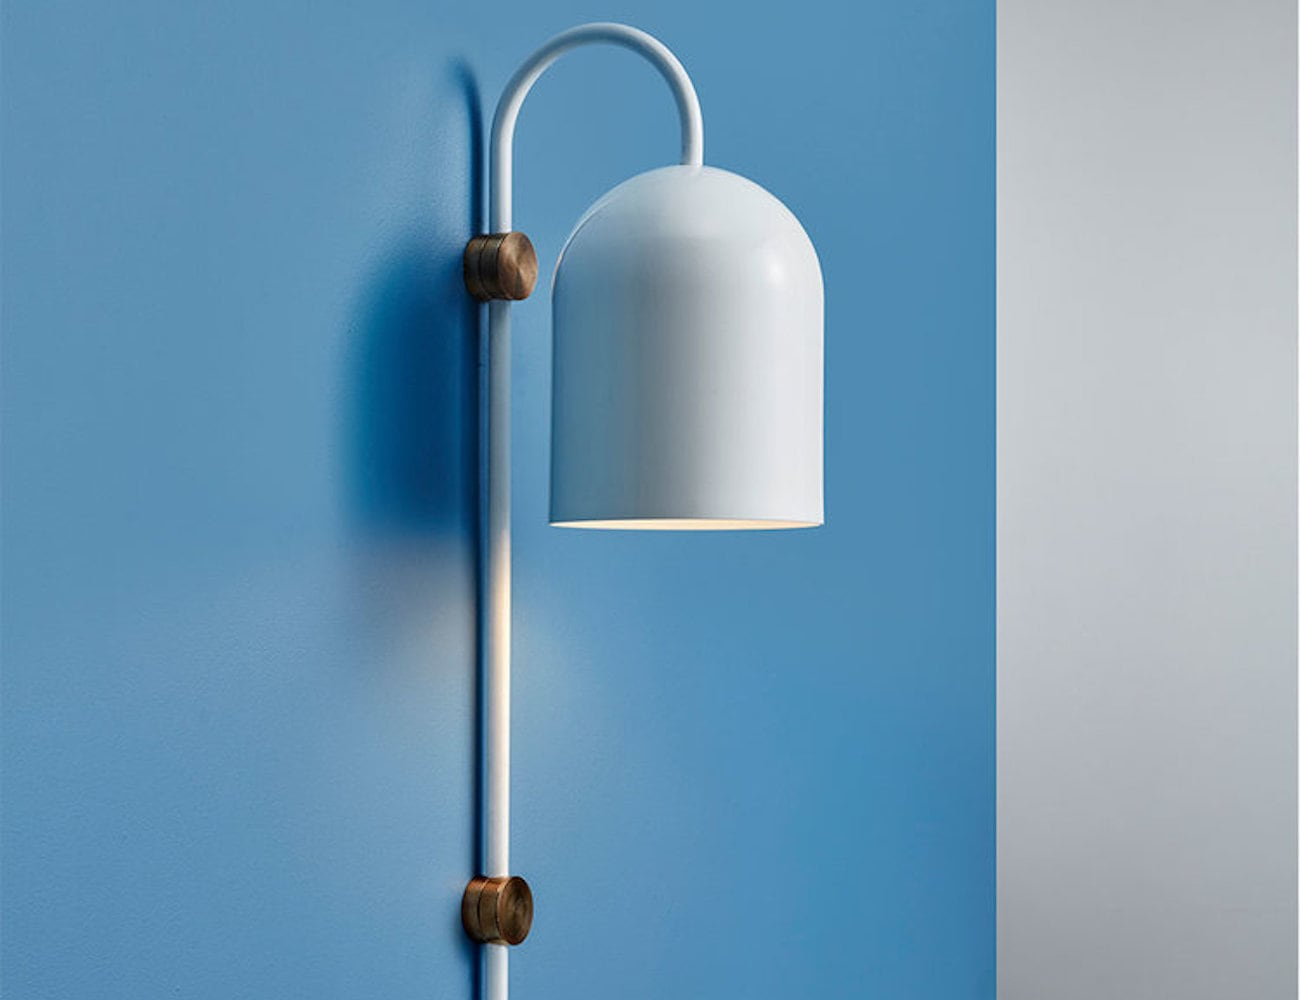 ANAESTHETIC Duomo Stem Wall Light has minimalist aesthetic appeal